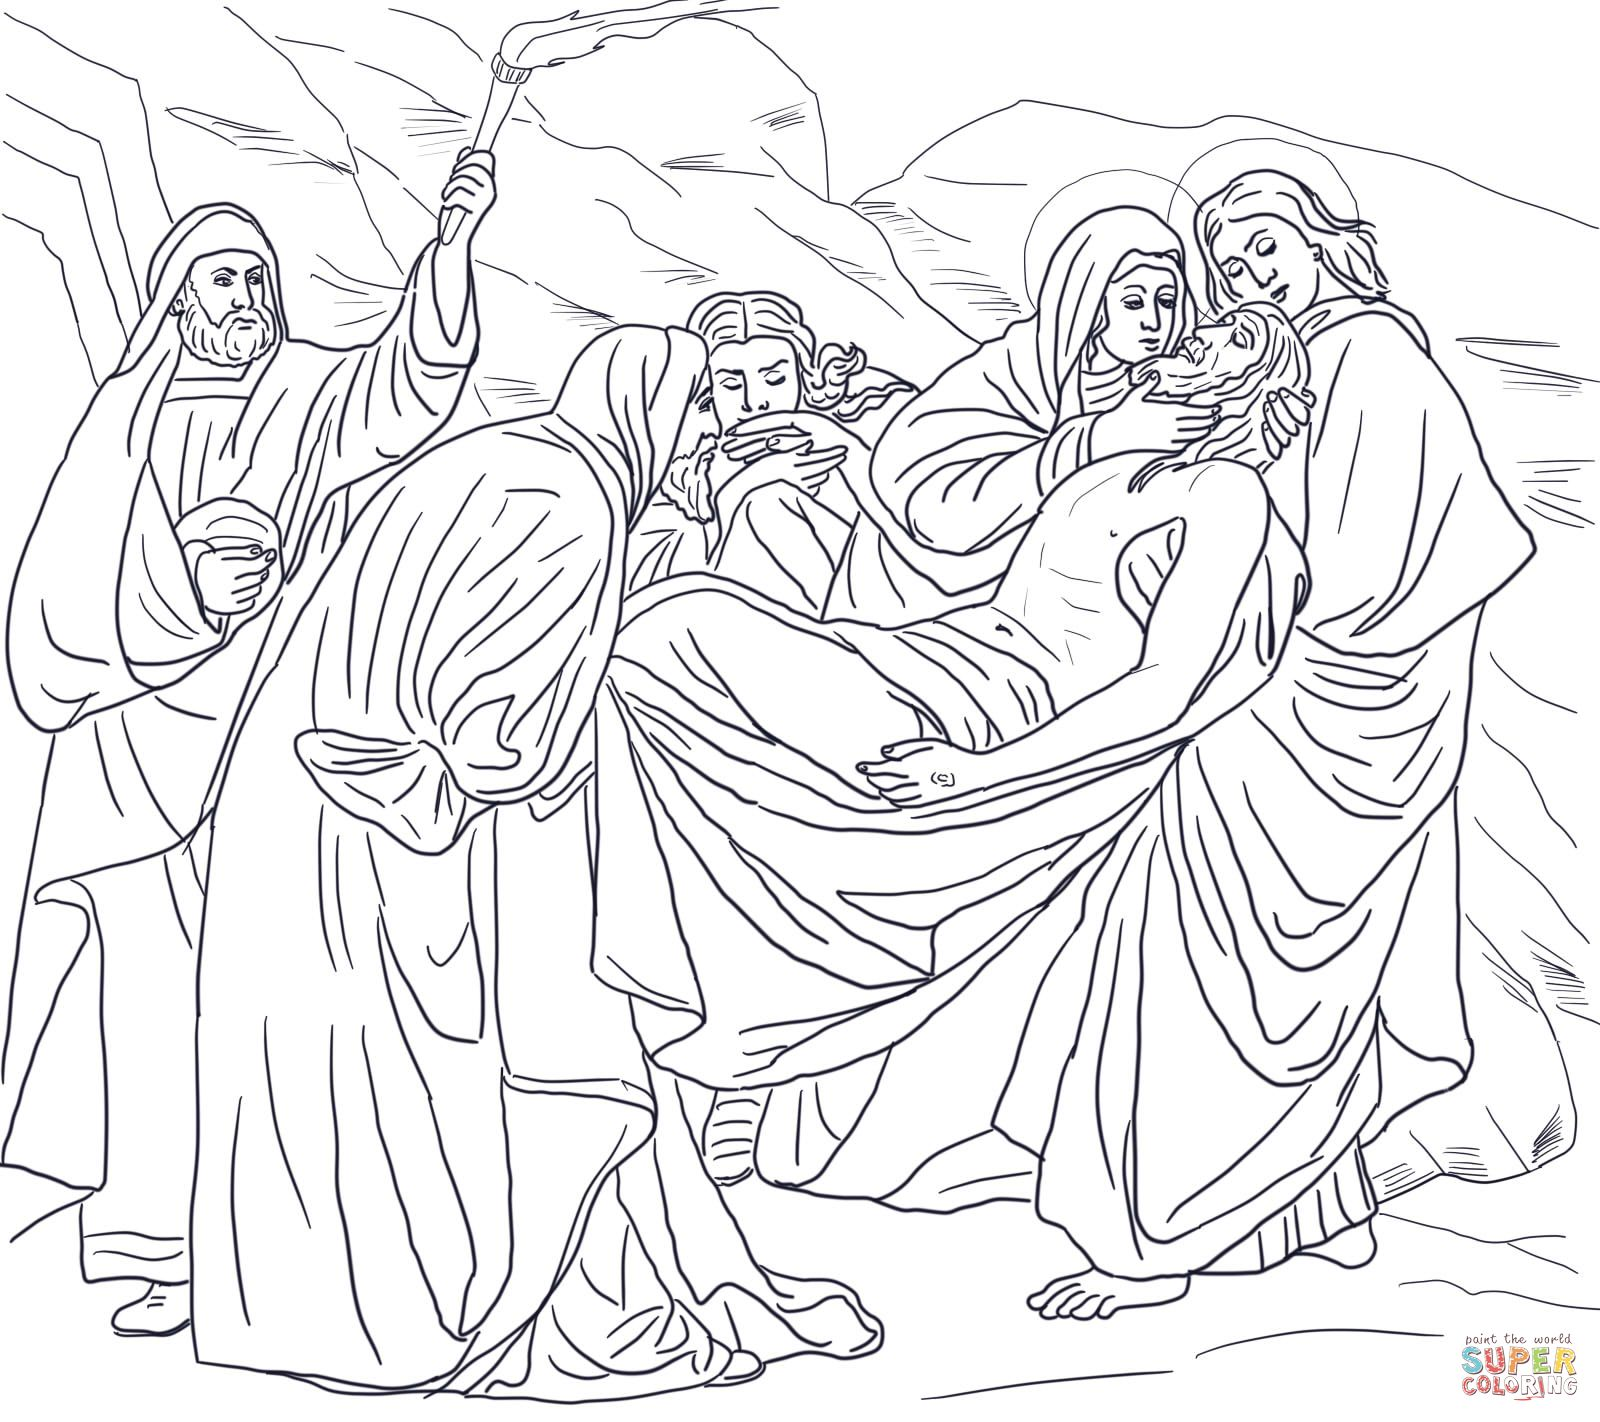 Good Friday coloring pages